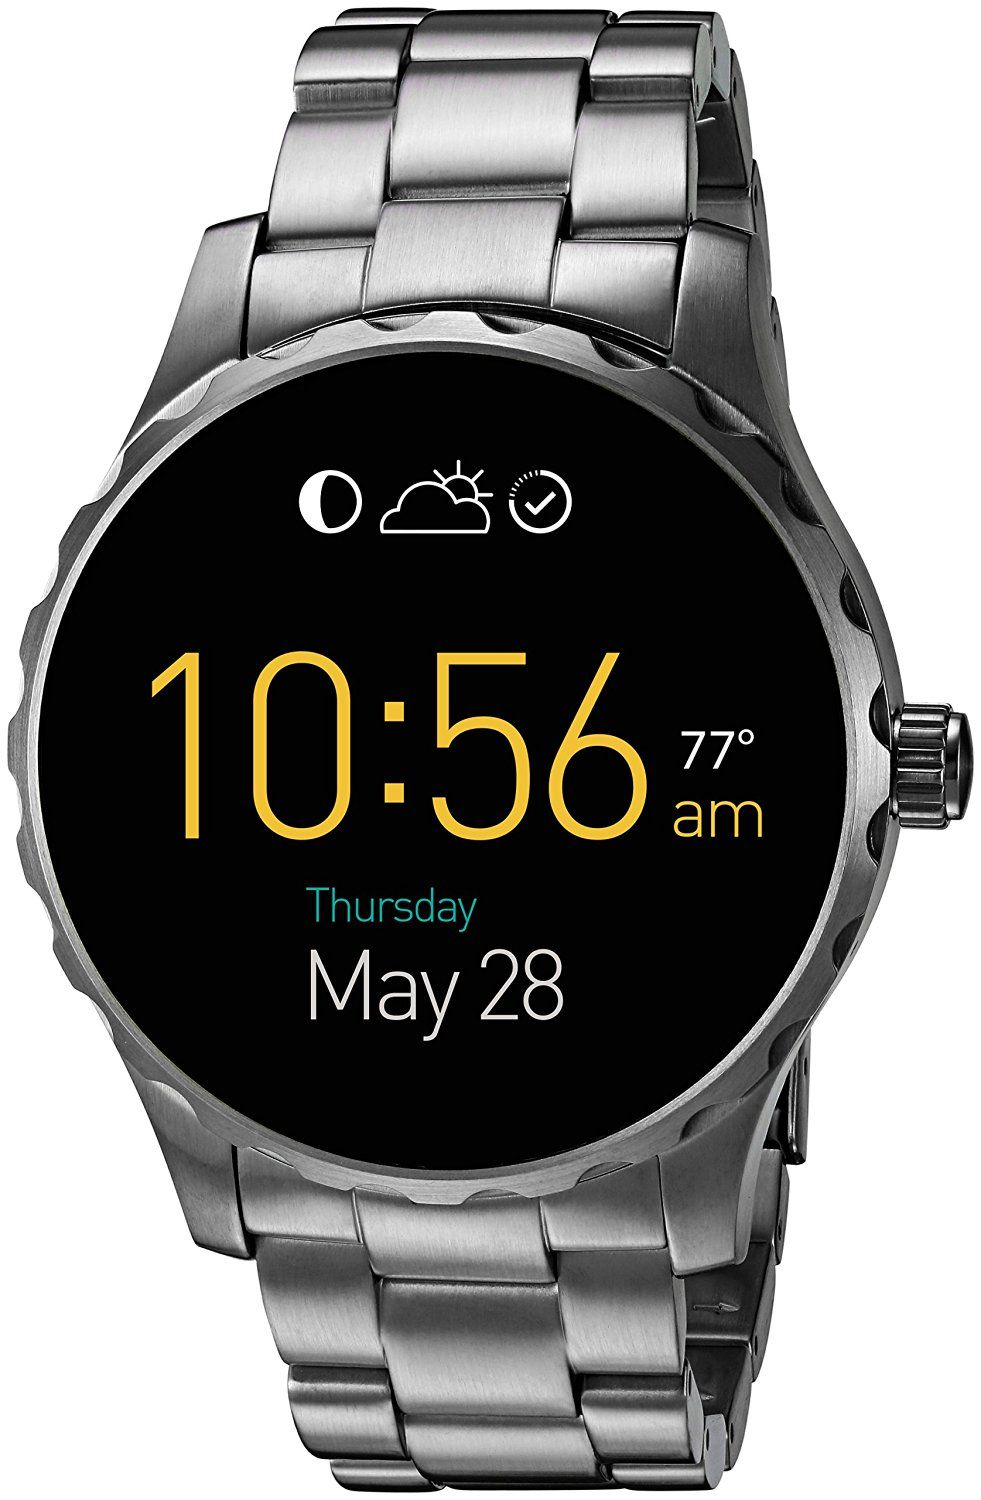 Fossil Q Marshal Touchscreen Gunmetal Stainless Steel